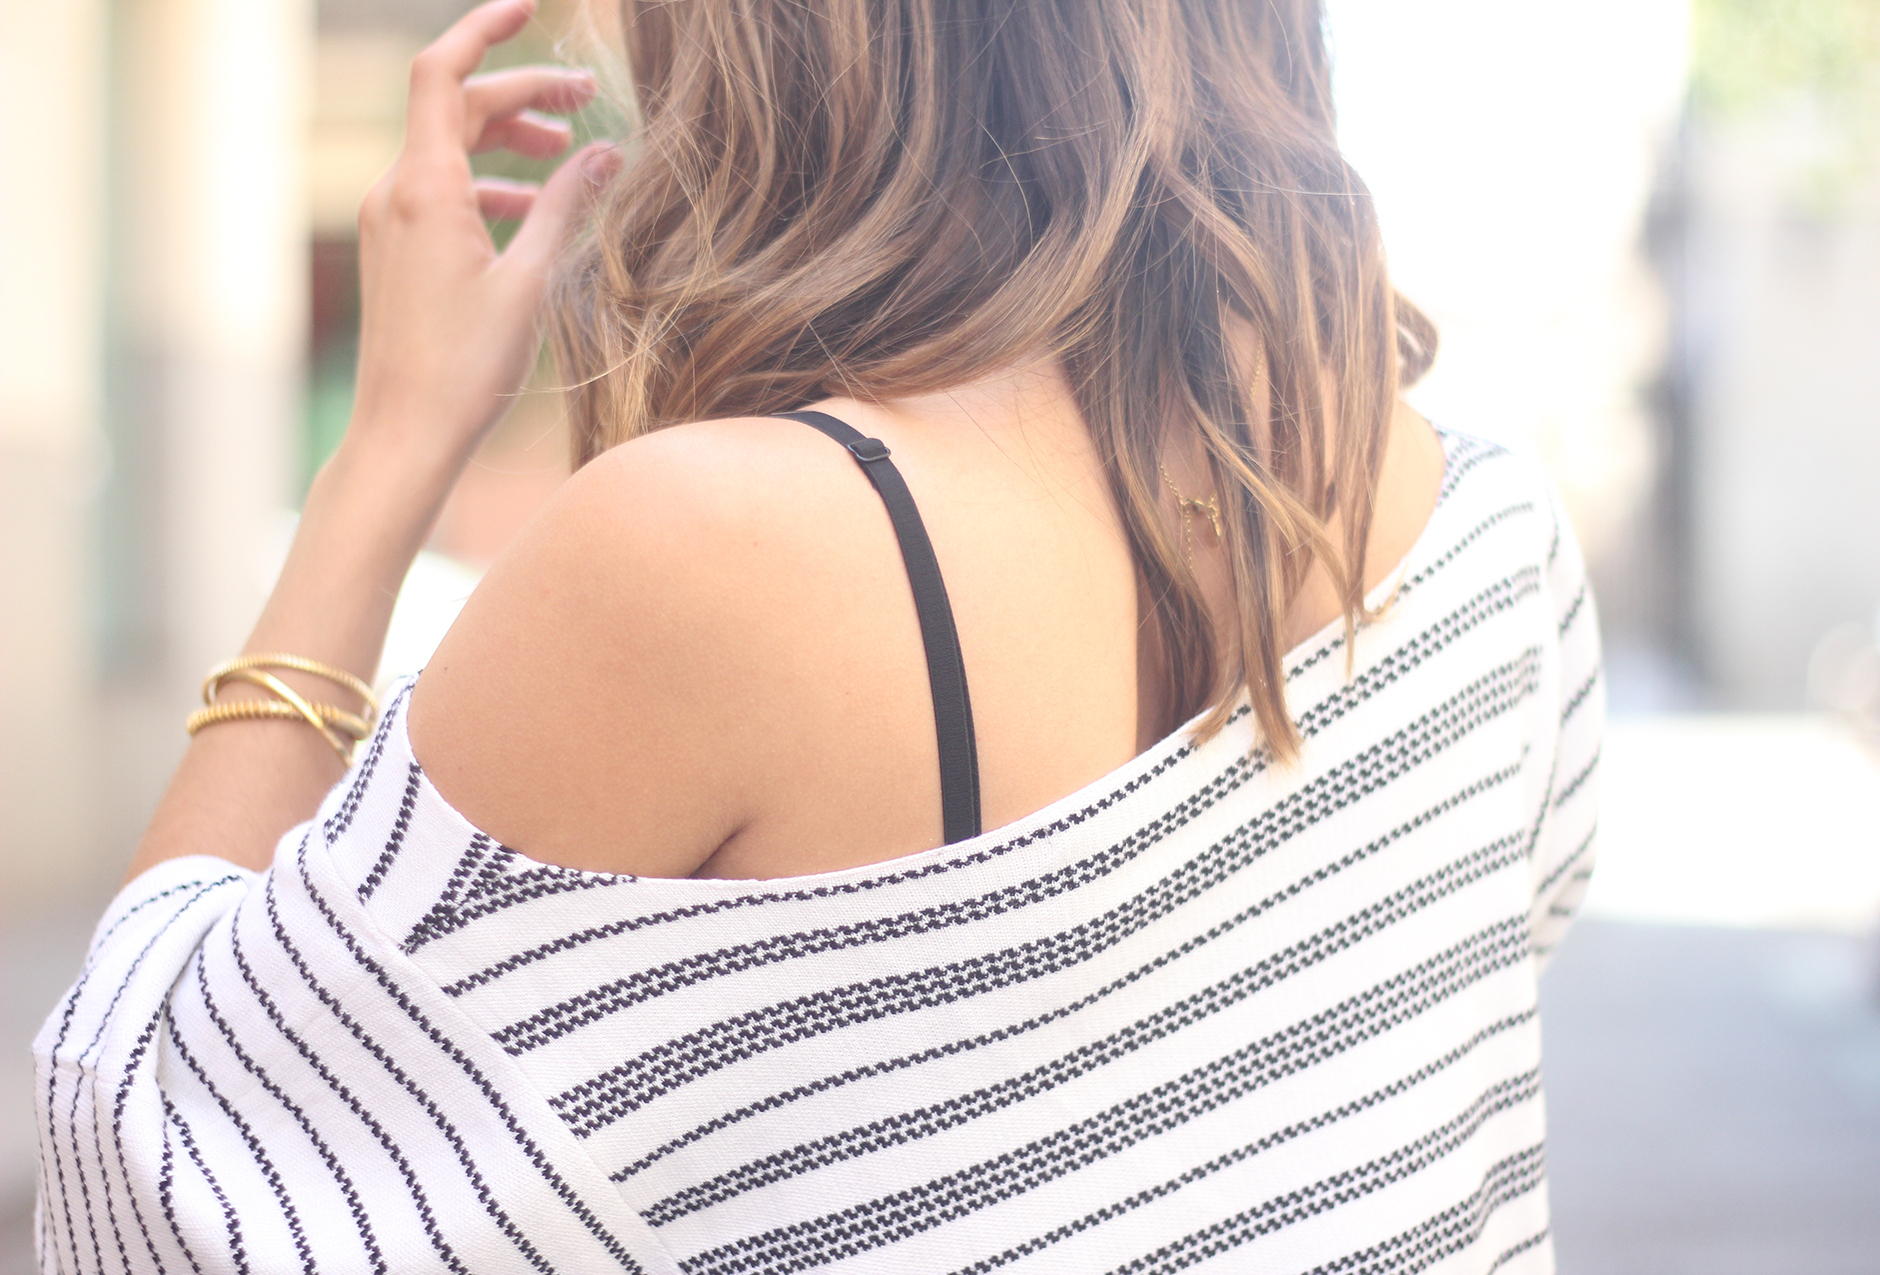 Casual Friday Jeans stripes top summer outfit17